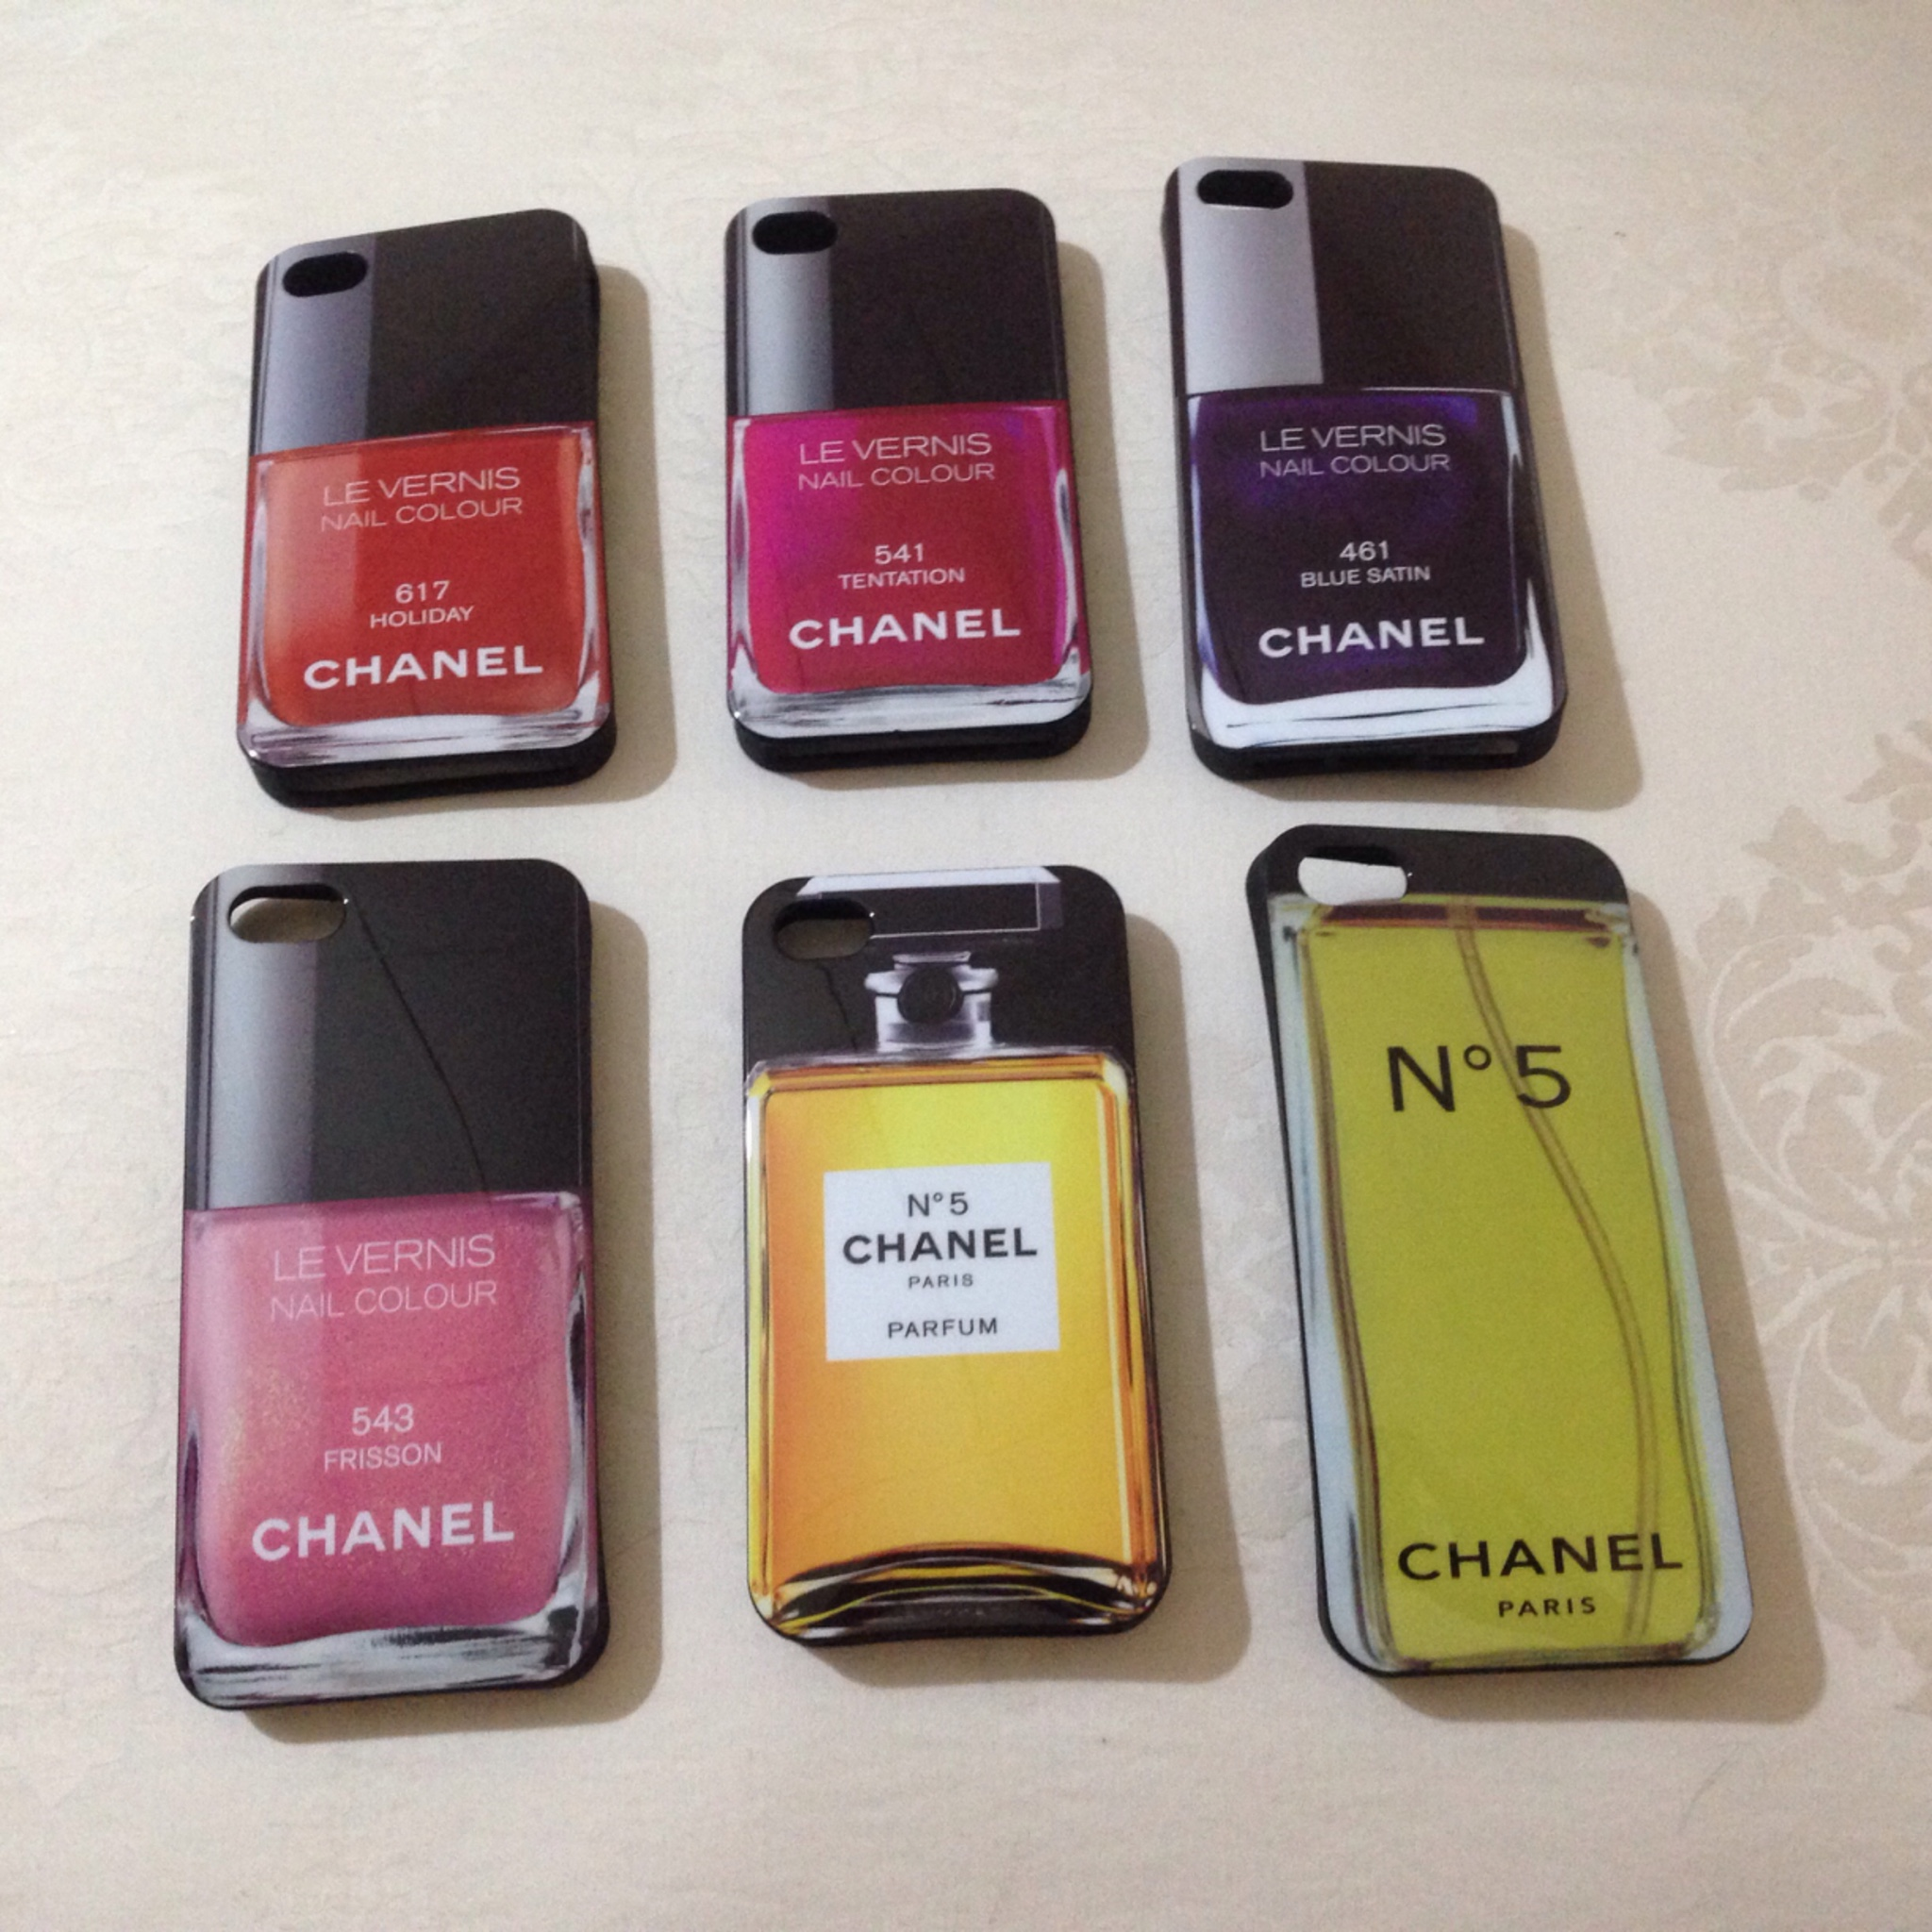 Awesome Iphone 5 Chanel Nail Polish Case Model - Nail Art Ideas ...